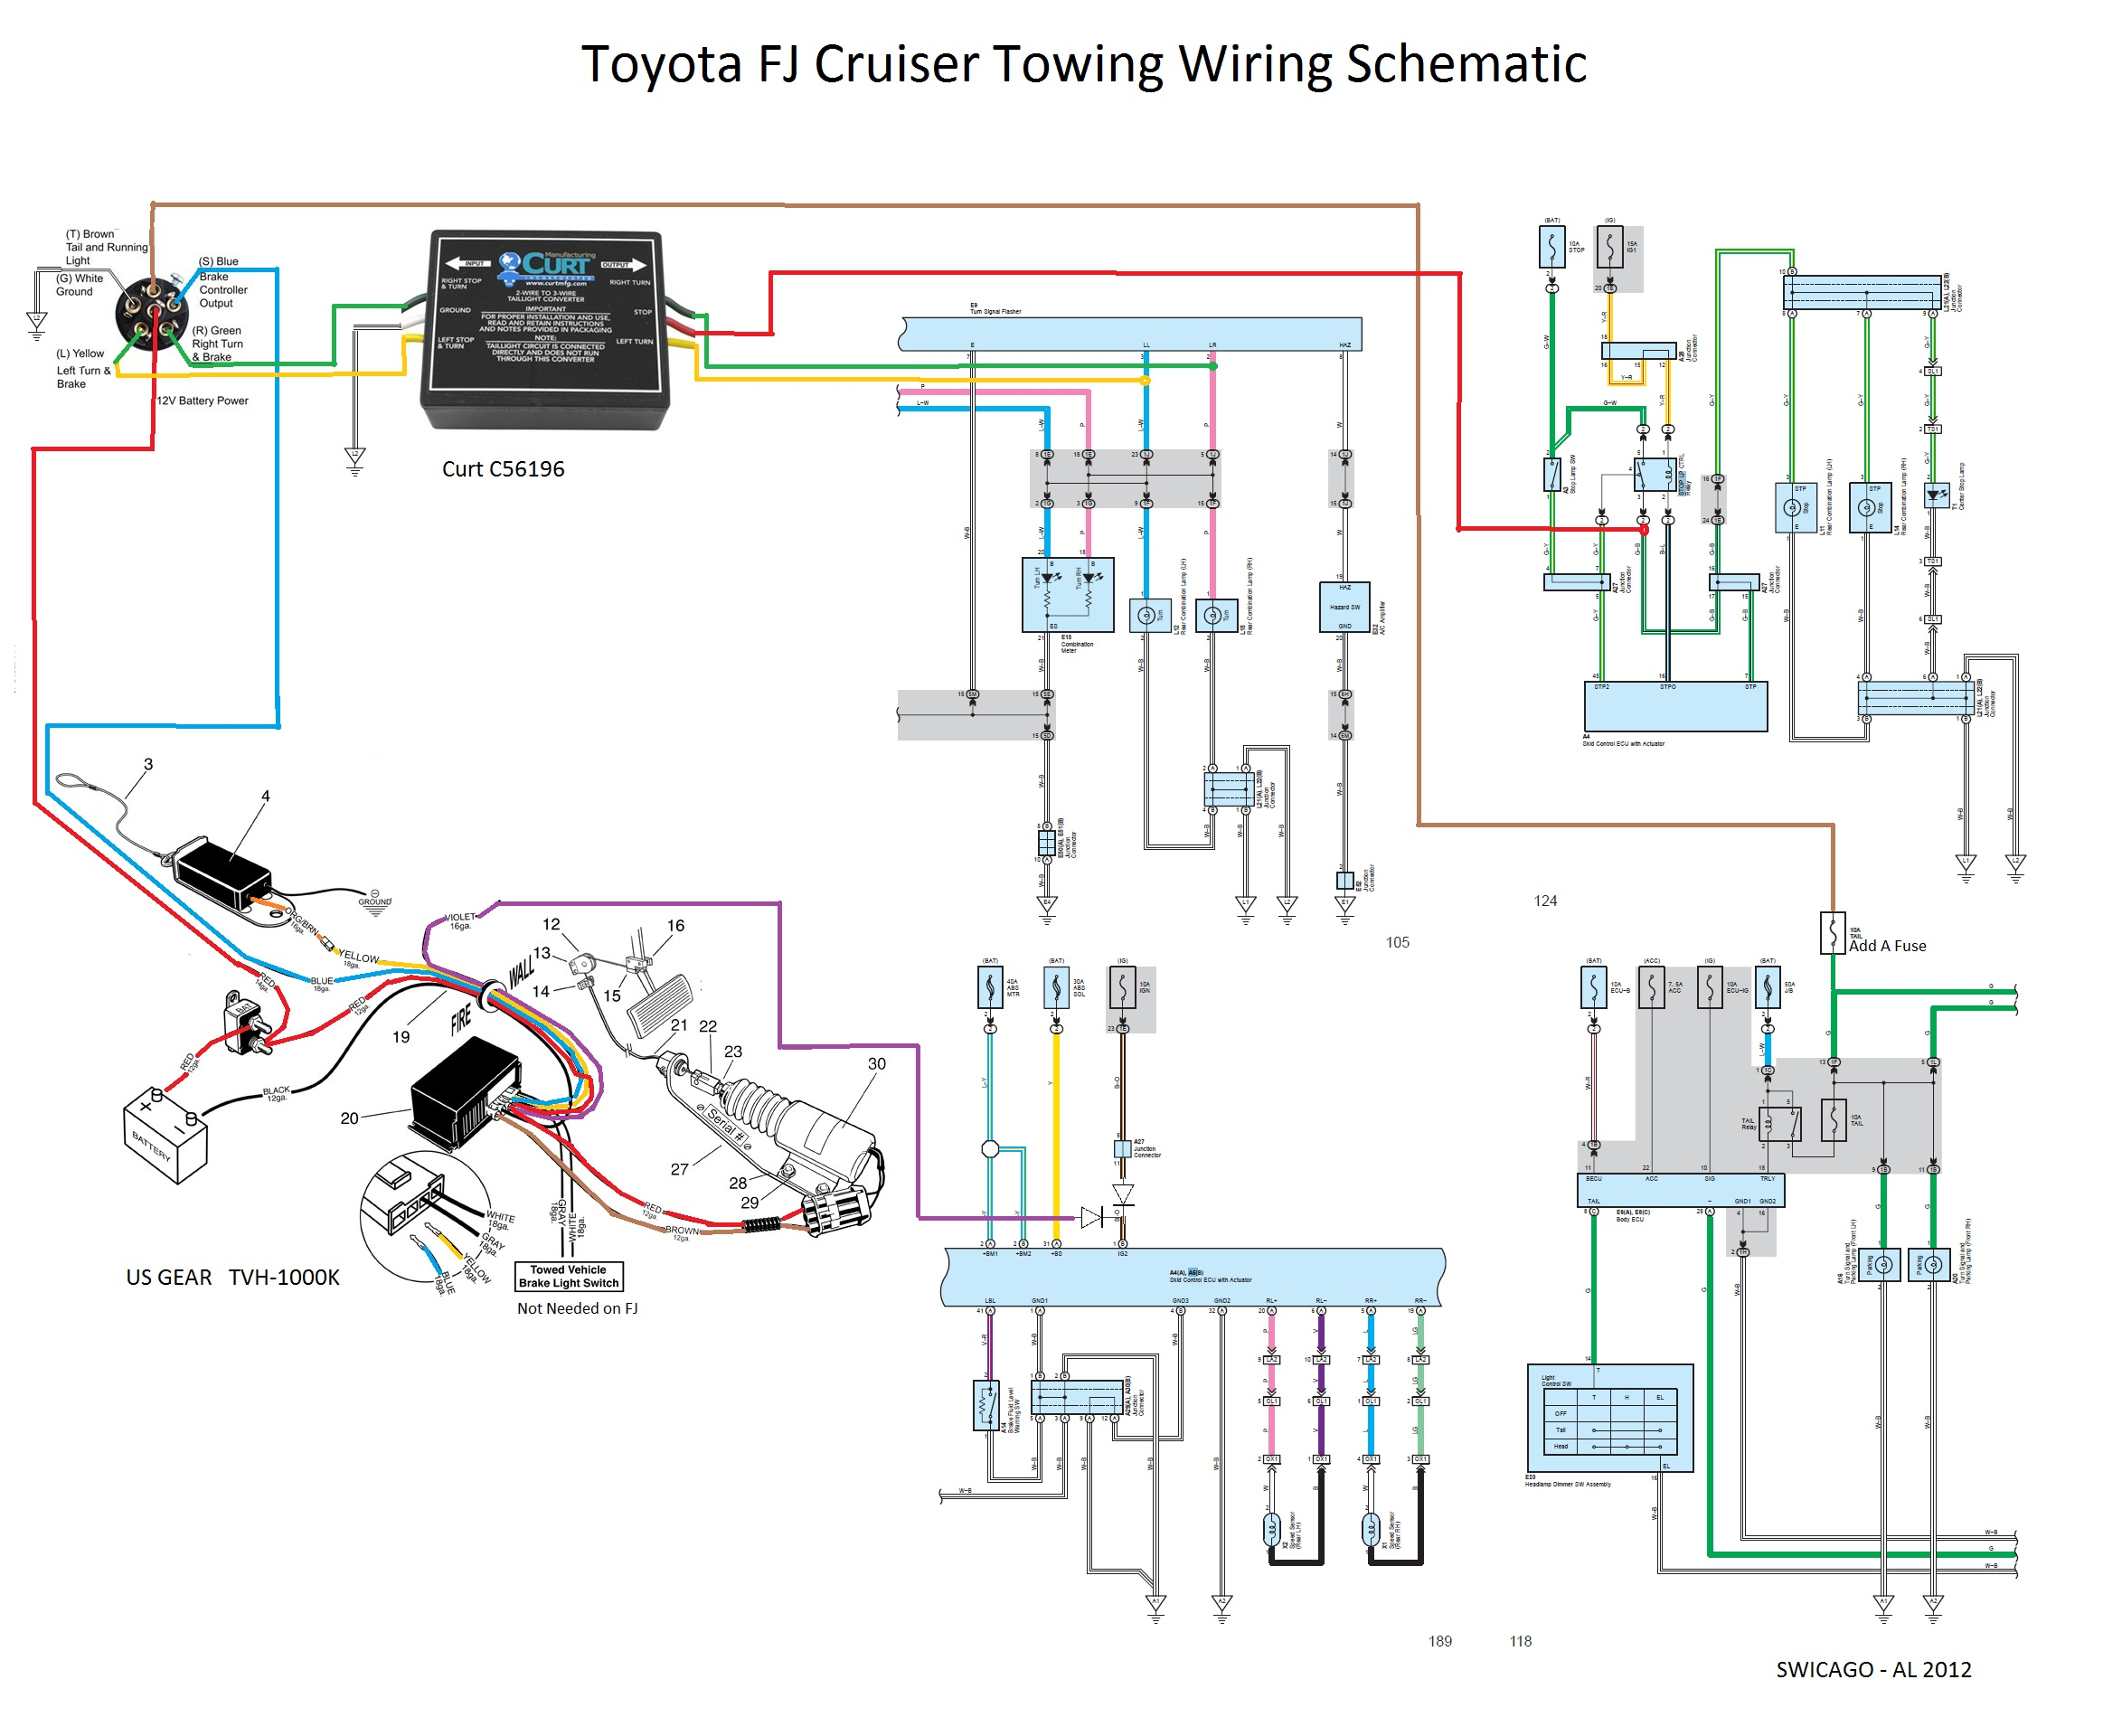 toyota tundra trailer wiring harness diagram Collection-Toyota Tundra Trailer Wiring Harness Diagram Beautiful Flat tow 6mt Yes It Can Be Done toyota 15-i